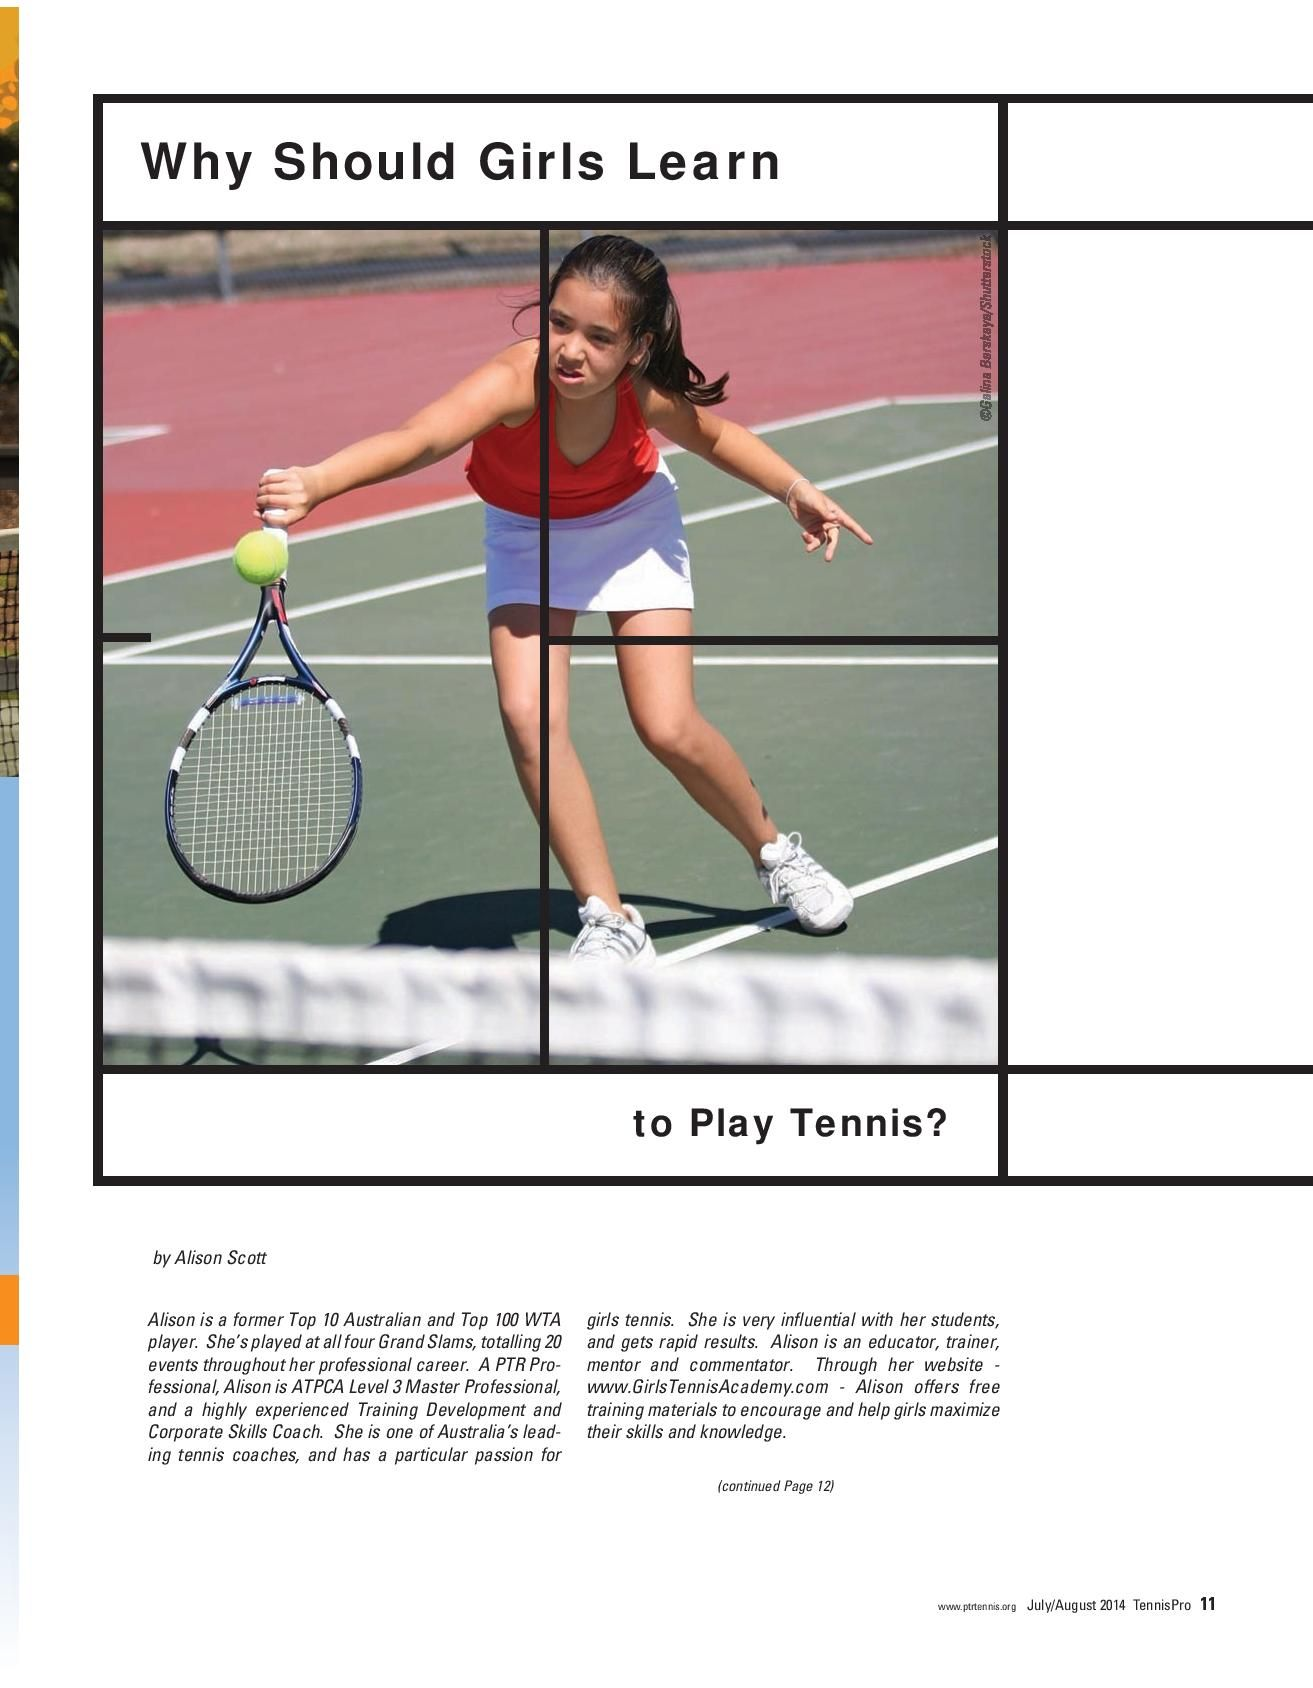 I Have Been Always Passionate About Motivating More And More Girls To Play Tennis I Love To Share My Understanding Of Why Girls Tennis Camp Tennis Play Tennis